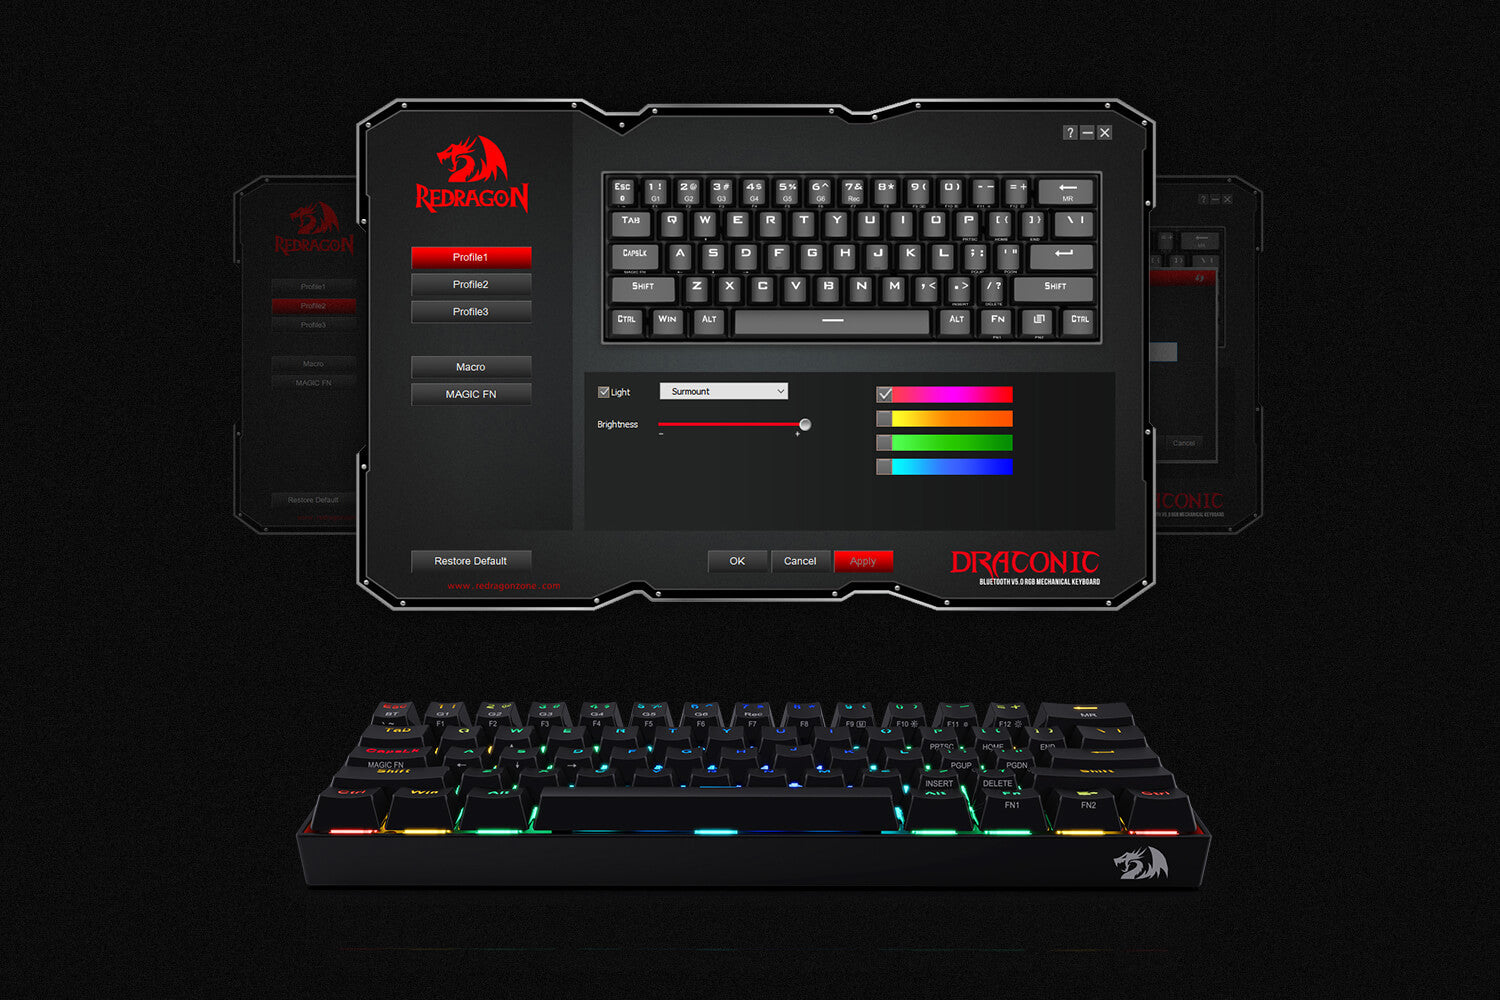 redragon 60% keyboard software